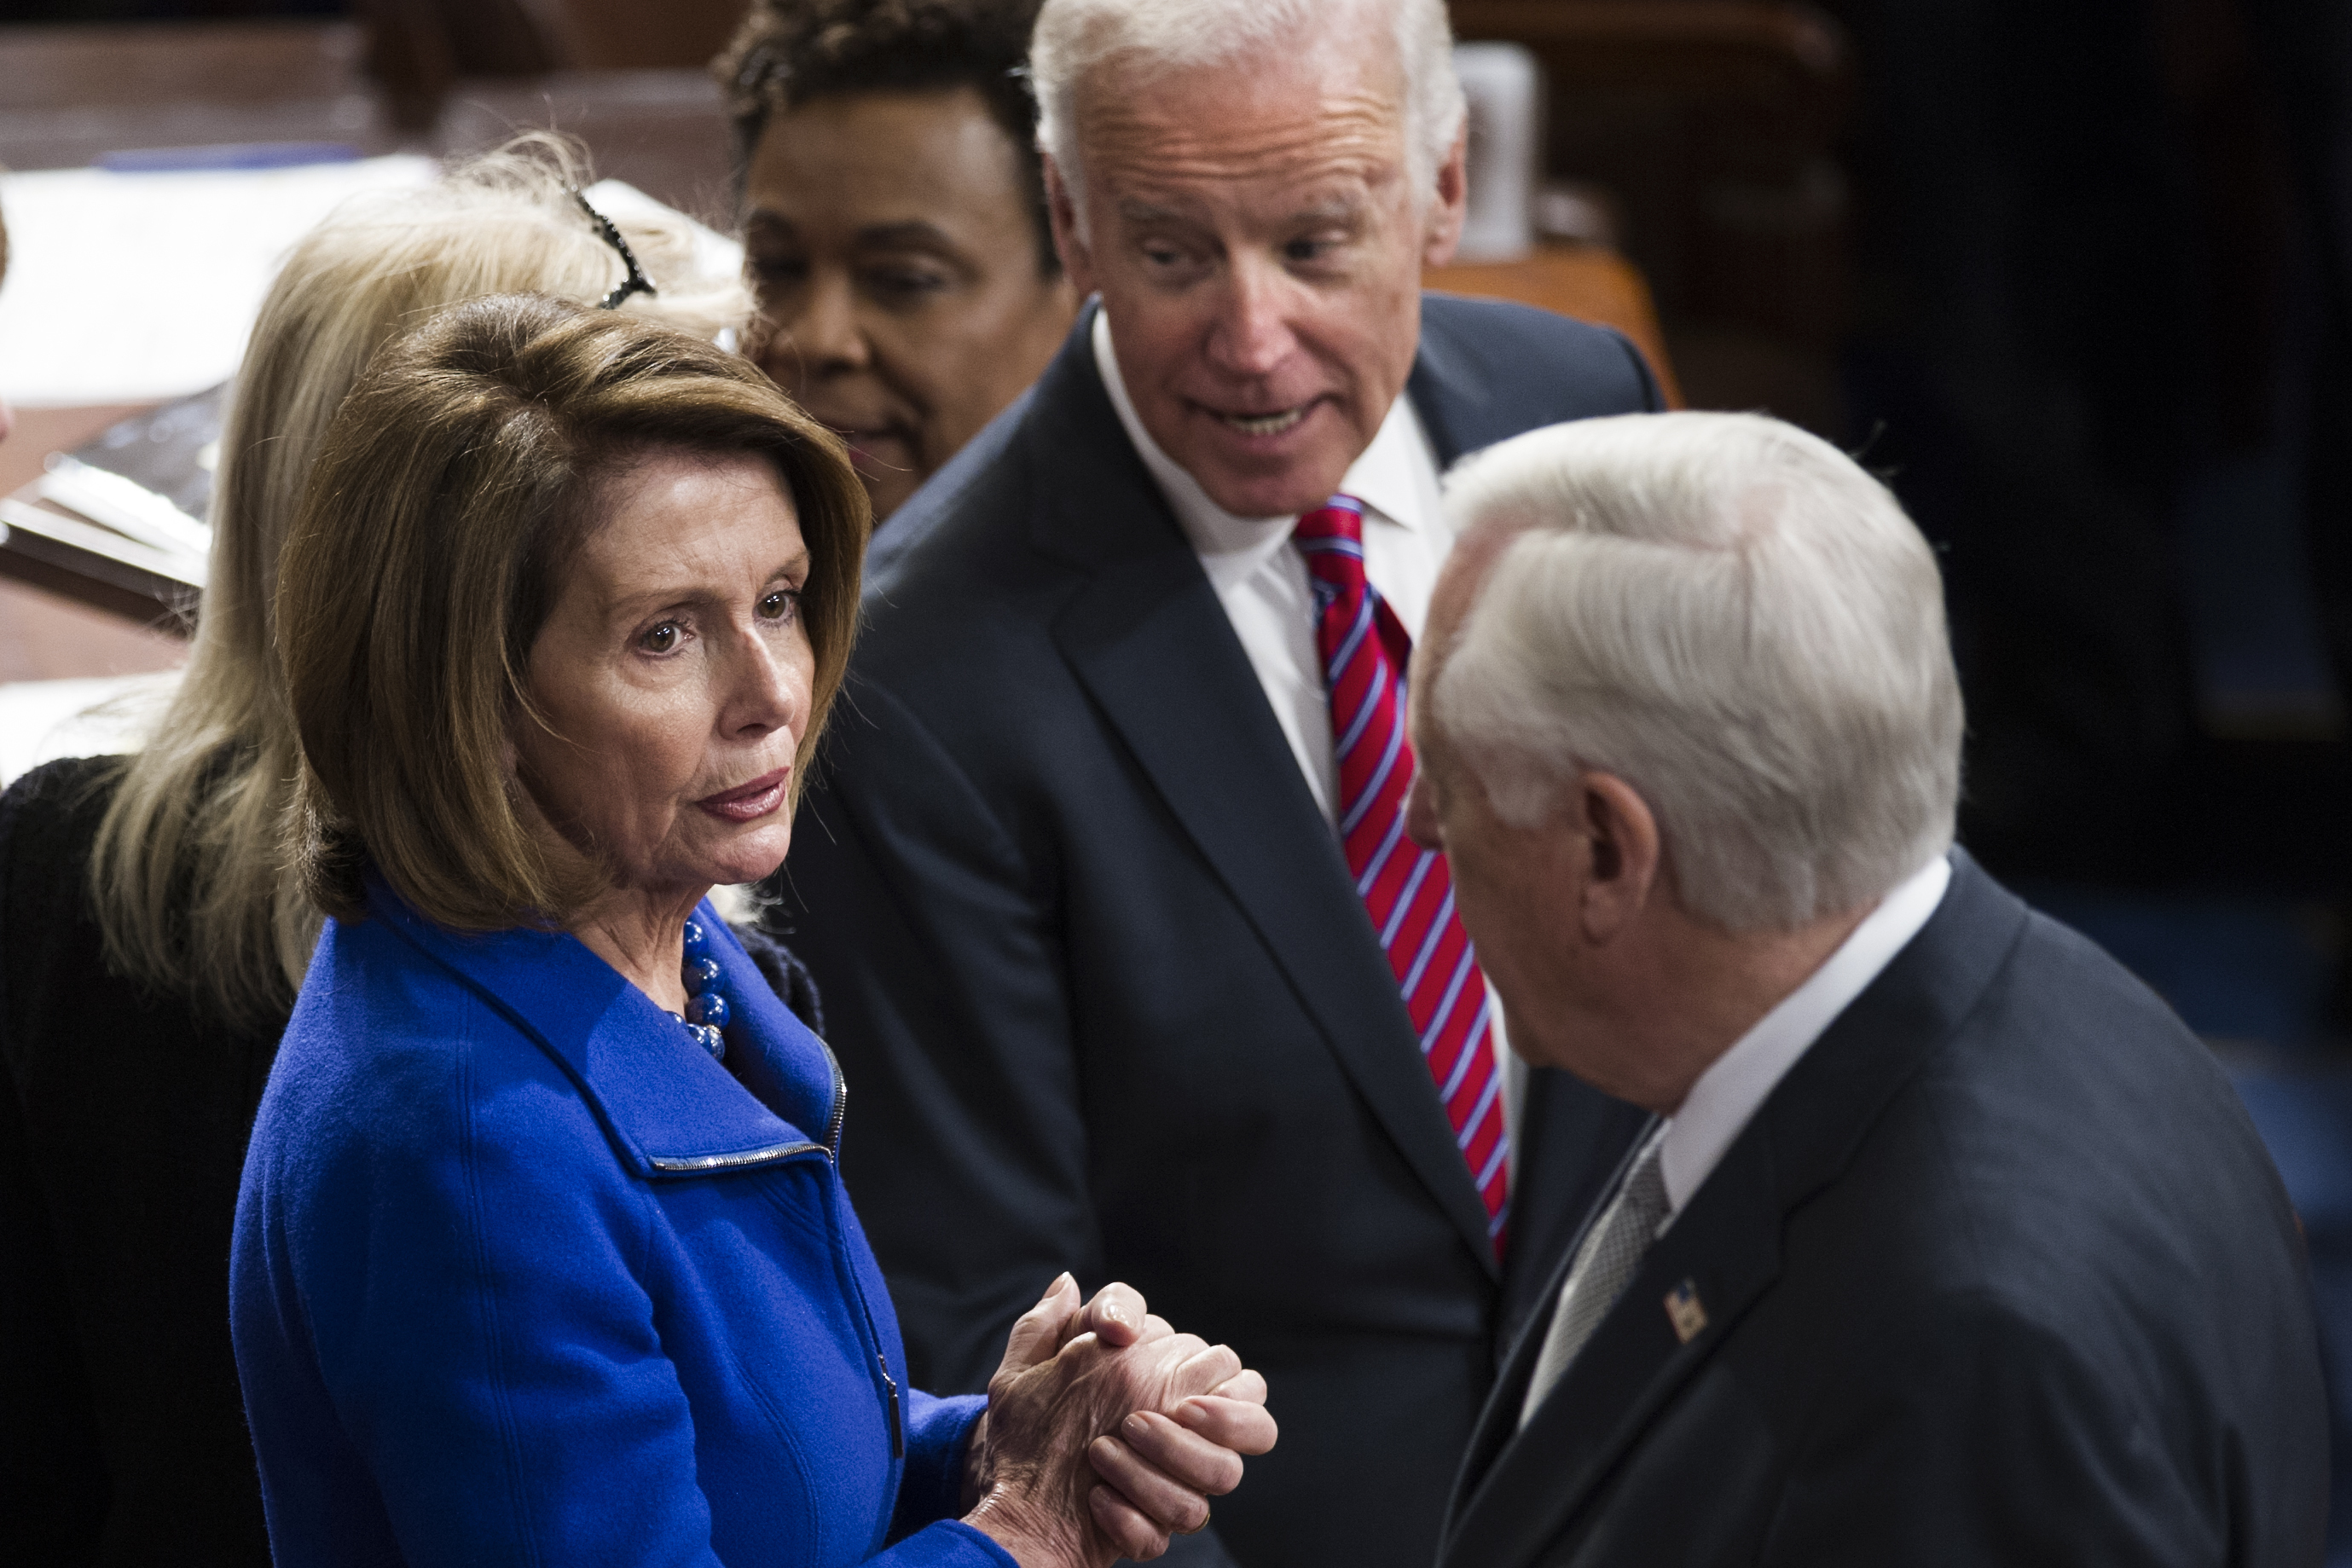 House Minority Leader Nancy Pelosi, center, Vice President Joe Biden, left, and Democratic Congressman Steny Hoyer talk after a joint session of Congress on Capitol Hill in Washington, Jan. 6, 2017.